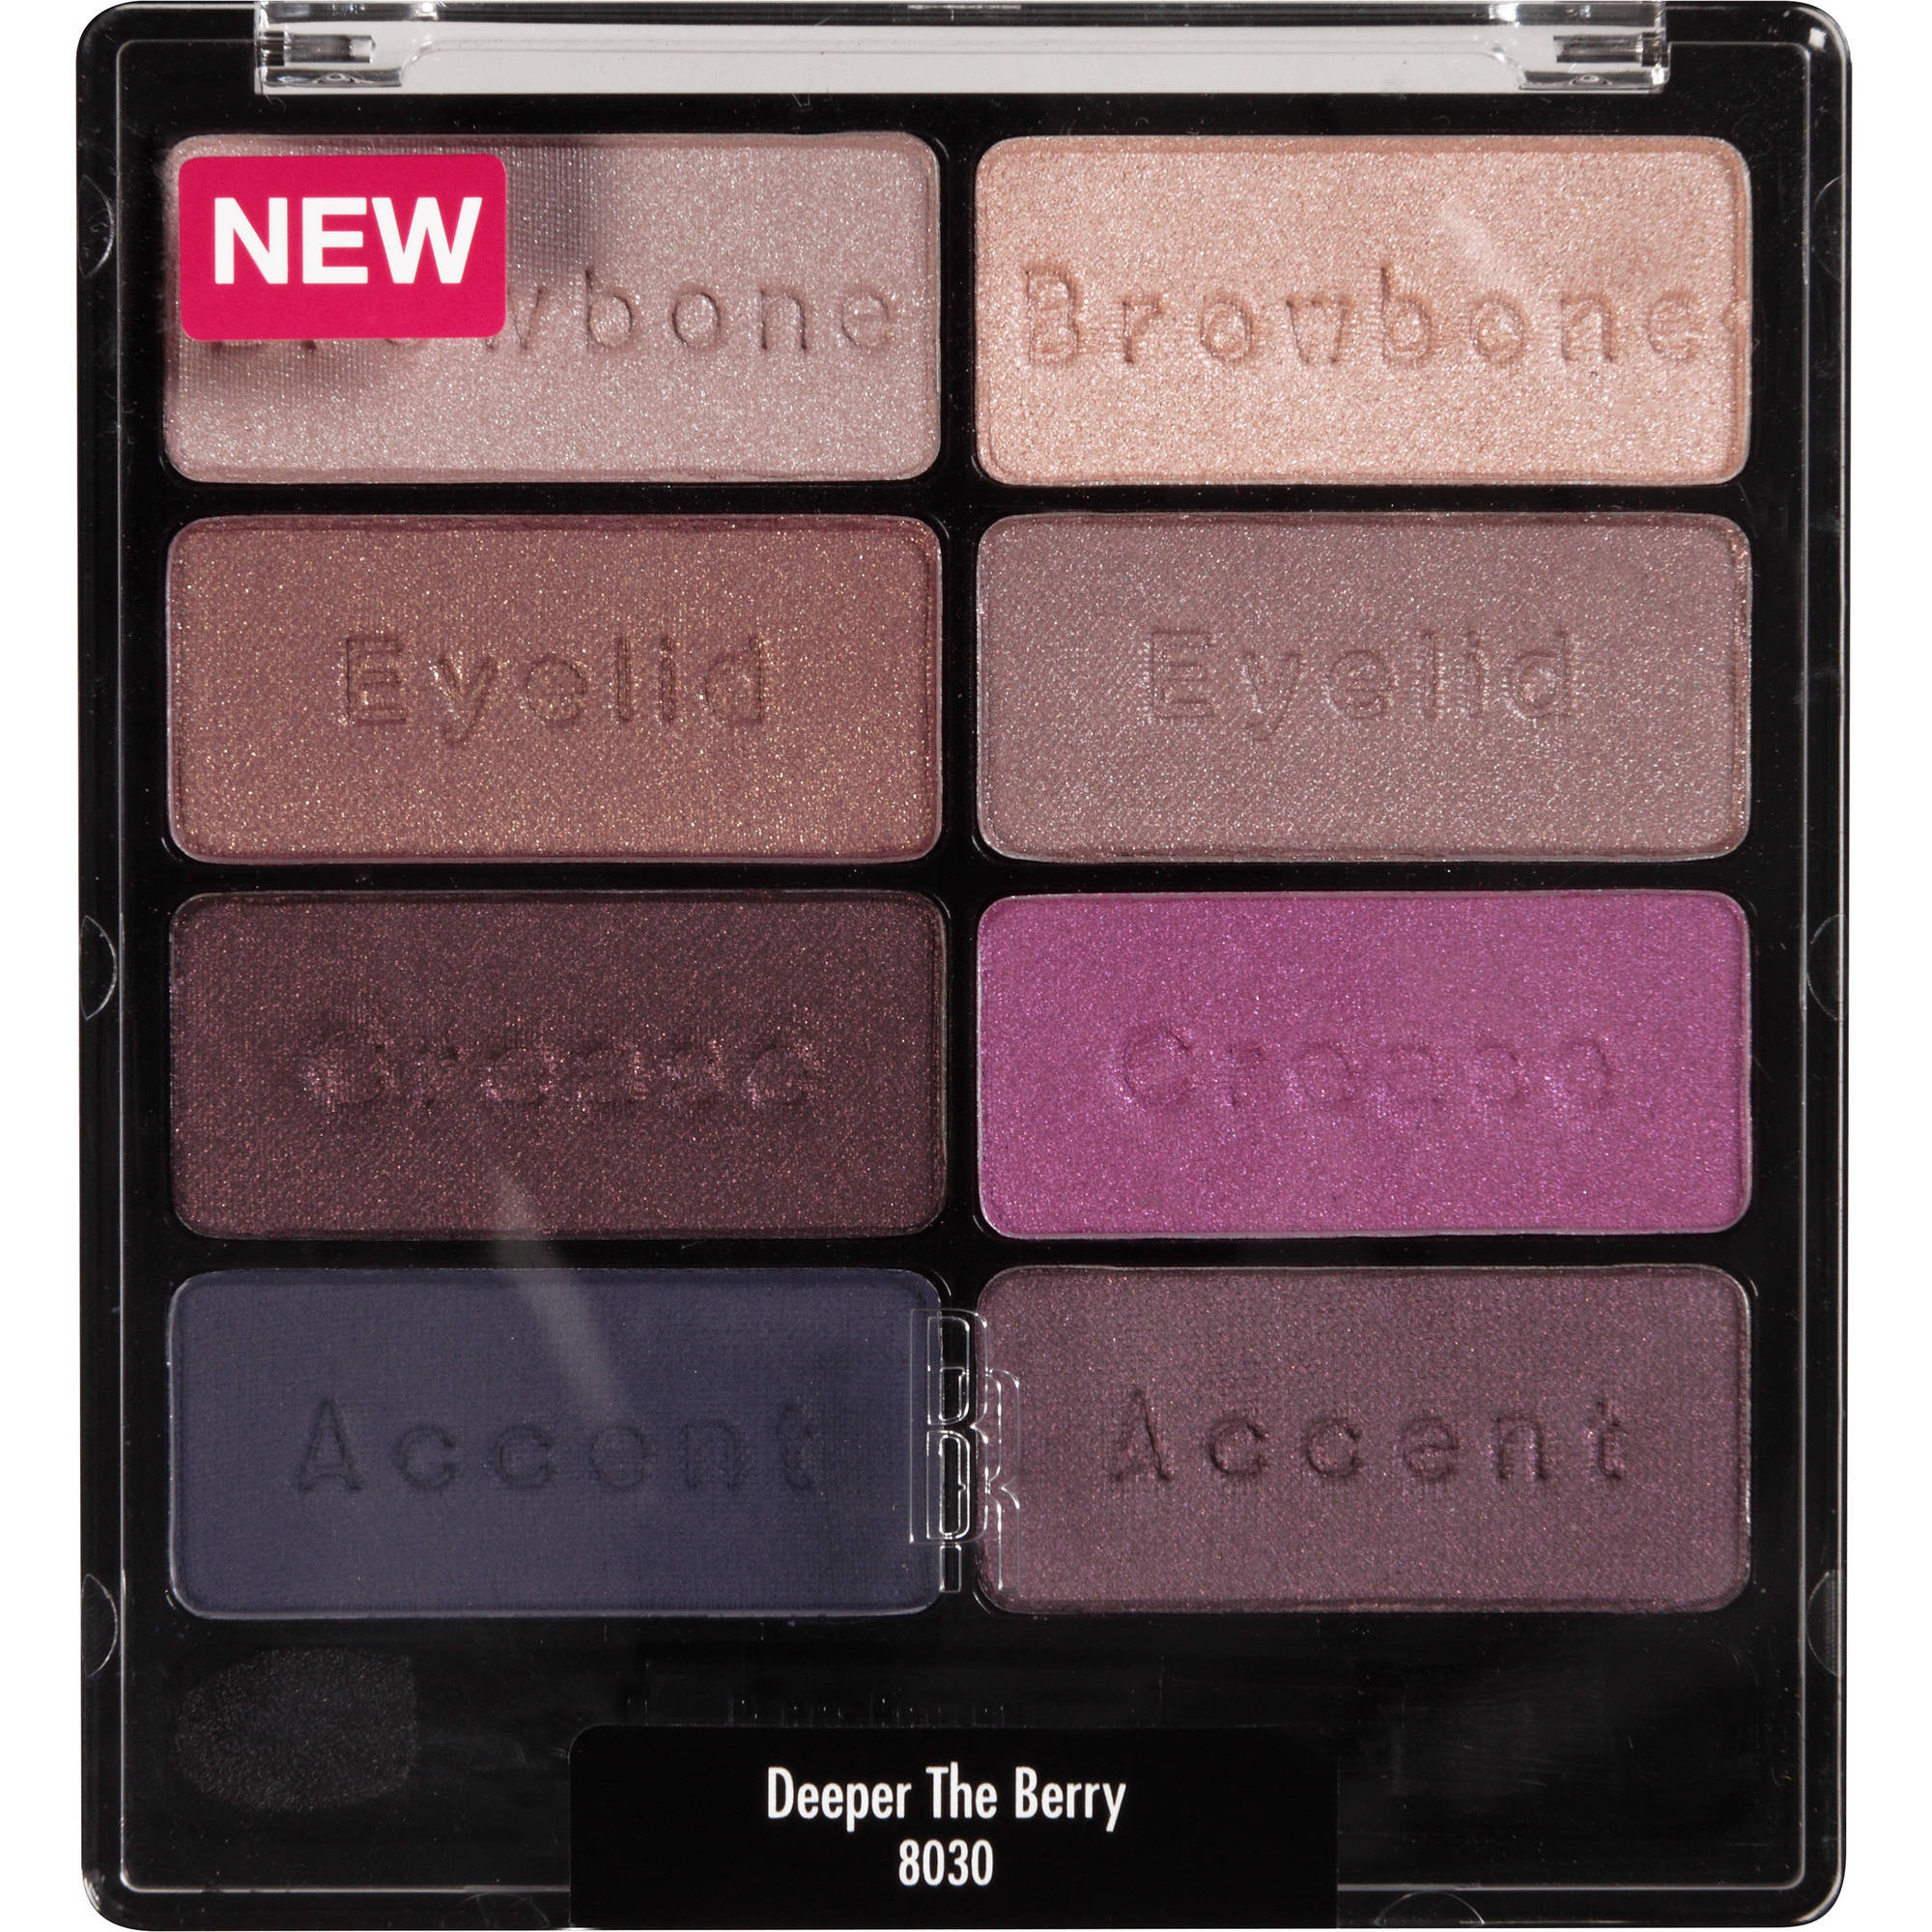 Black Radiance Eye Appeal Shadow Collection Eye Shadow, 8030 Deeper the Berry, 0.3 oz